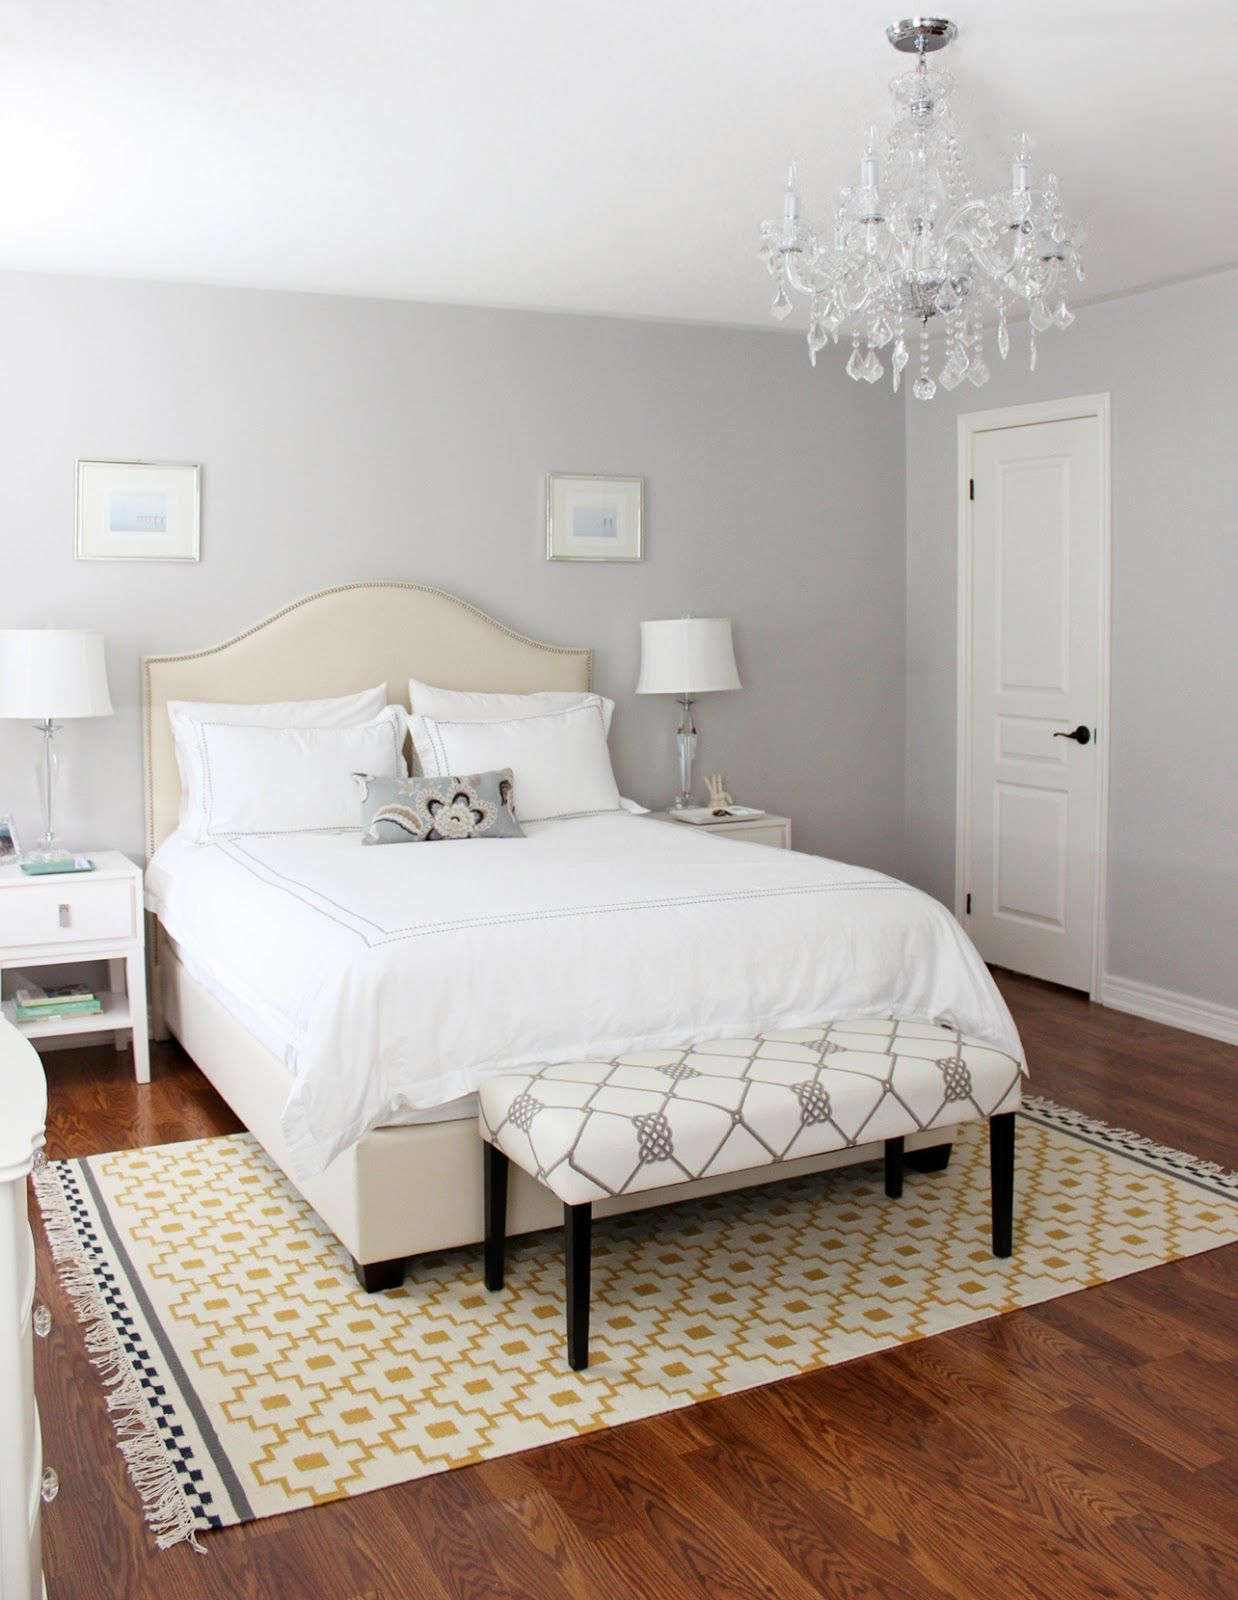 AM Dolce Vita: House Tour  Bedroom interior, Bedroom colors